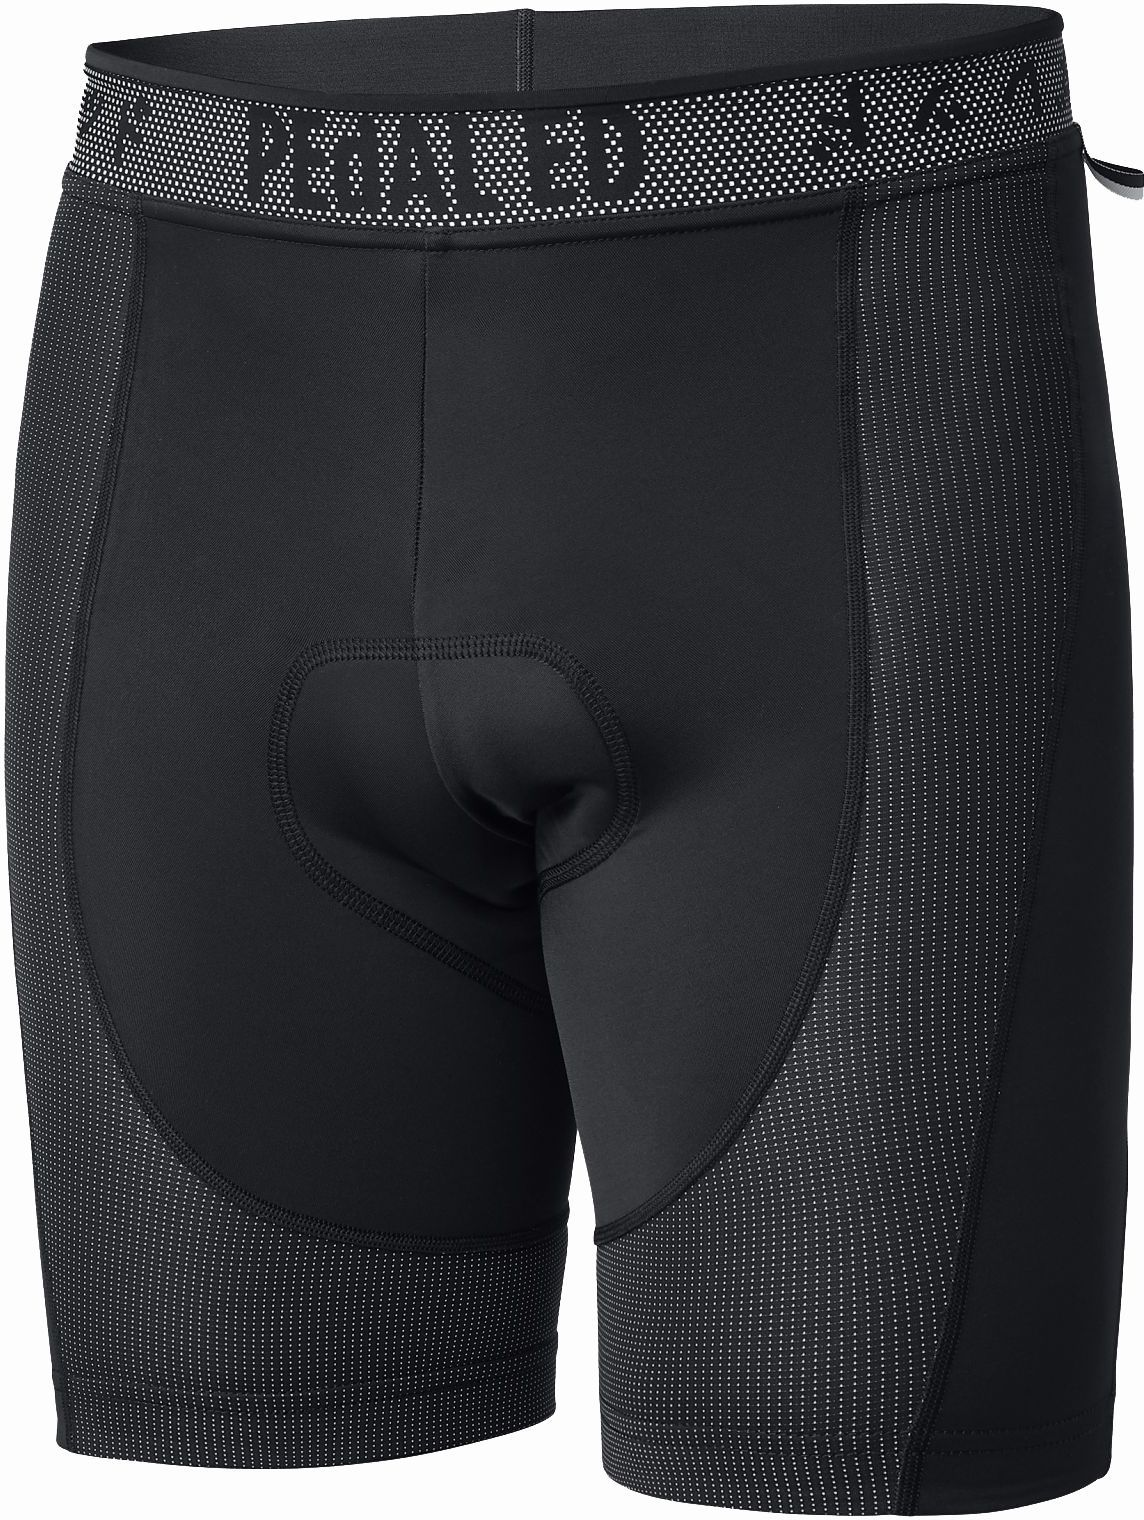 PEdAL ED Jary All-road Boxer Pad - black M